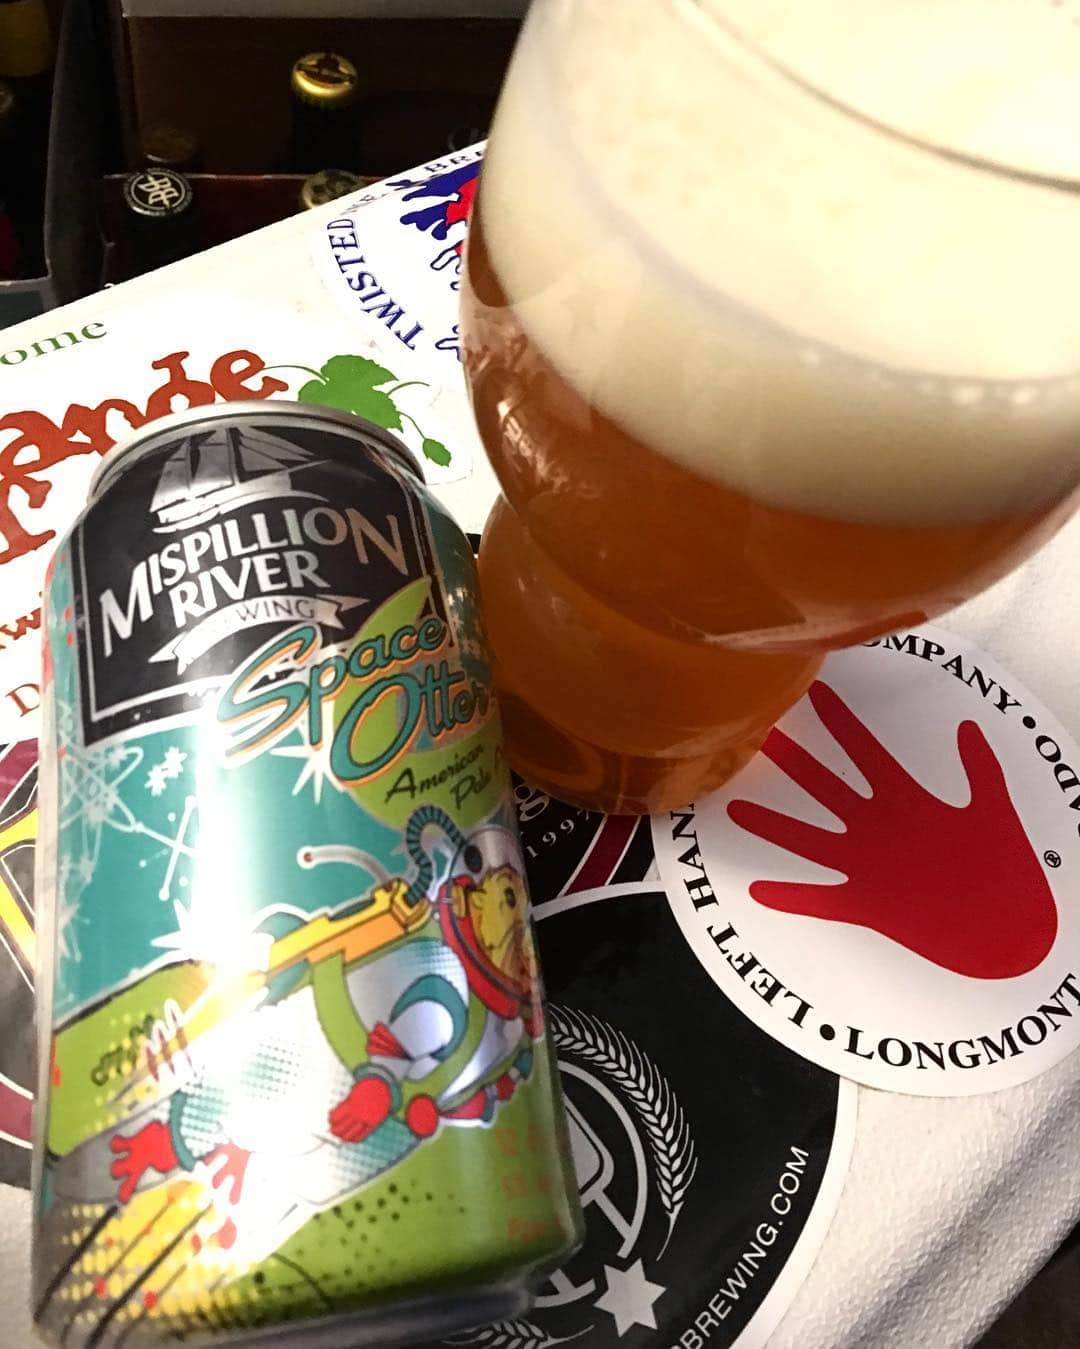 @mispillion Space Otter American Pale Ale